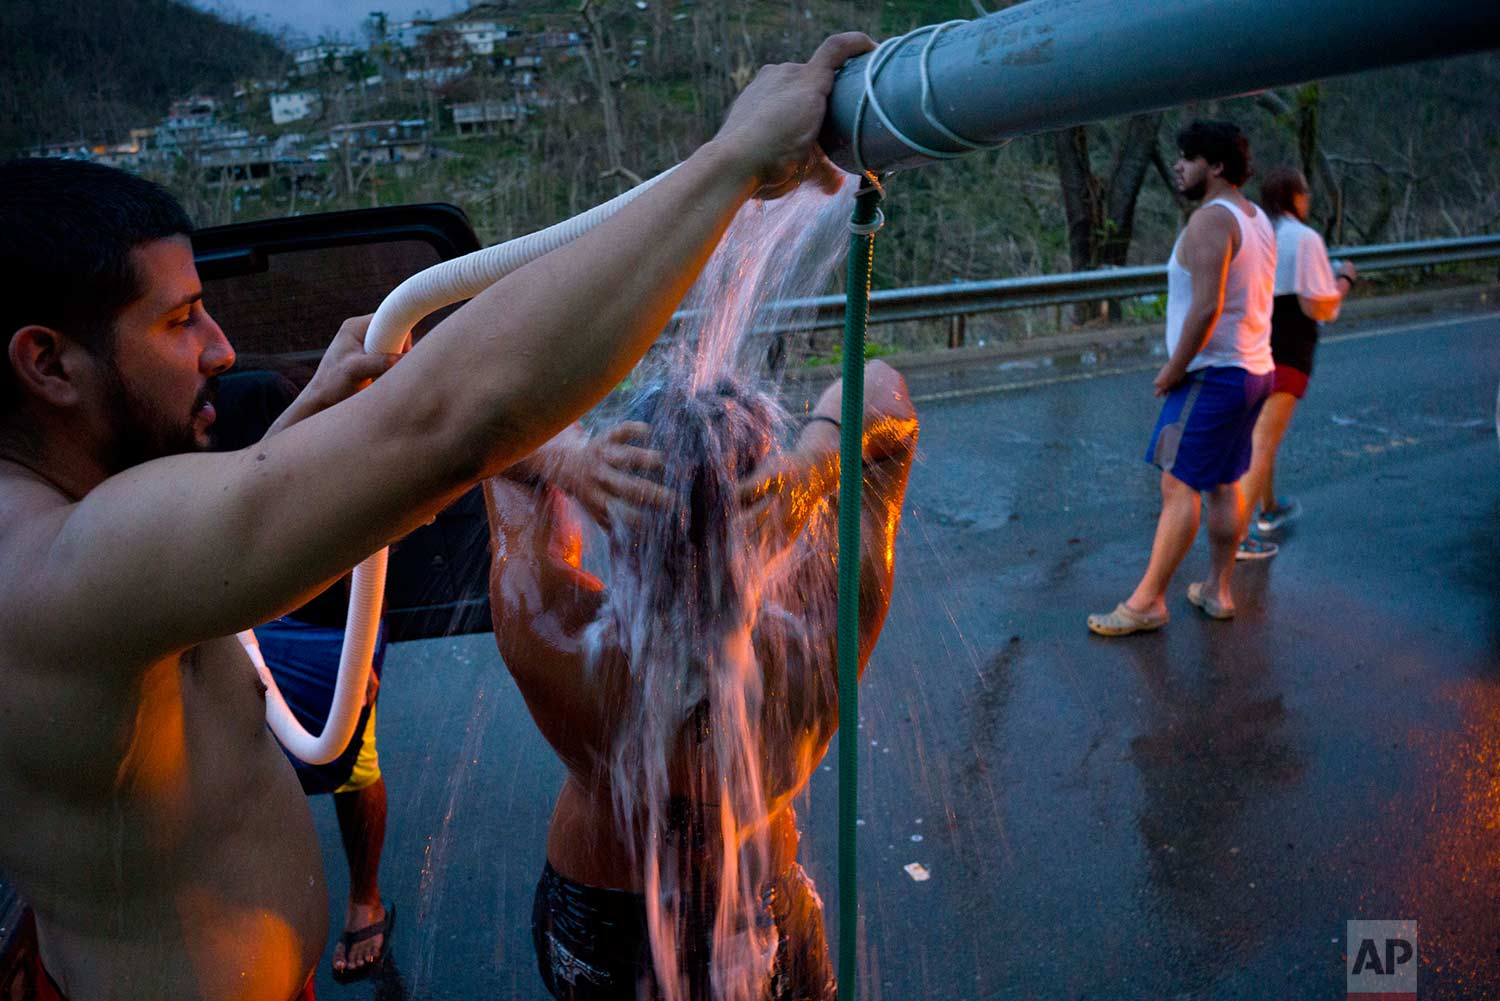 People affected by Hurricane Maria bathe in water pipes from a creek in the mountains, in Naranjito, Puerto Rico, Thursday, Sept. 28, 2017. (AP Photo/Ramon Espinosa)